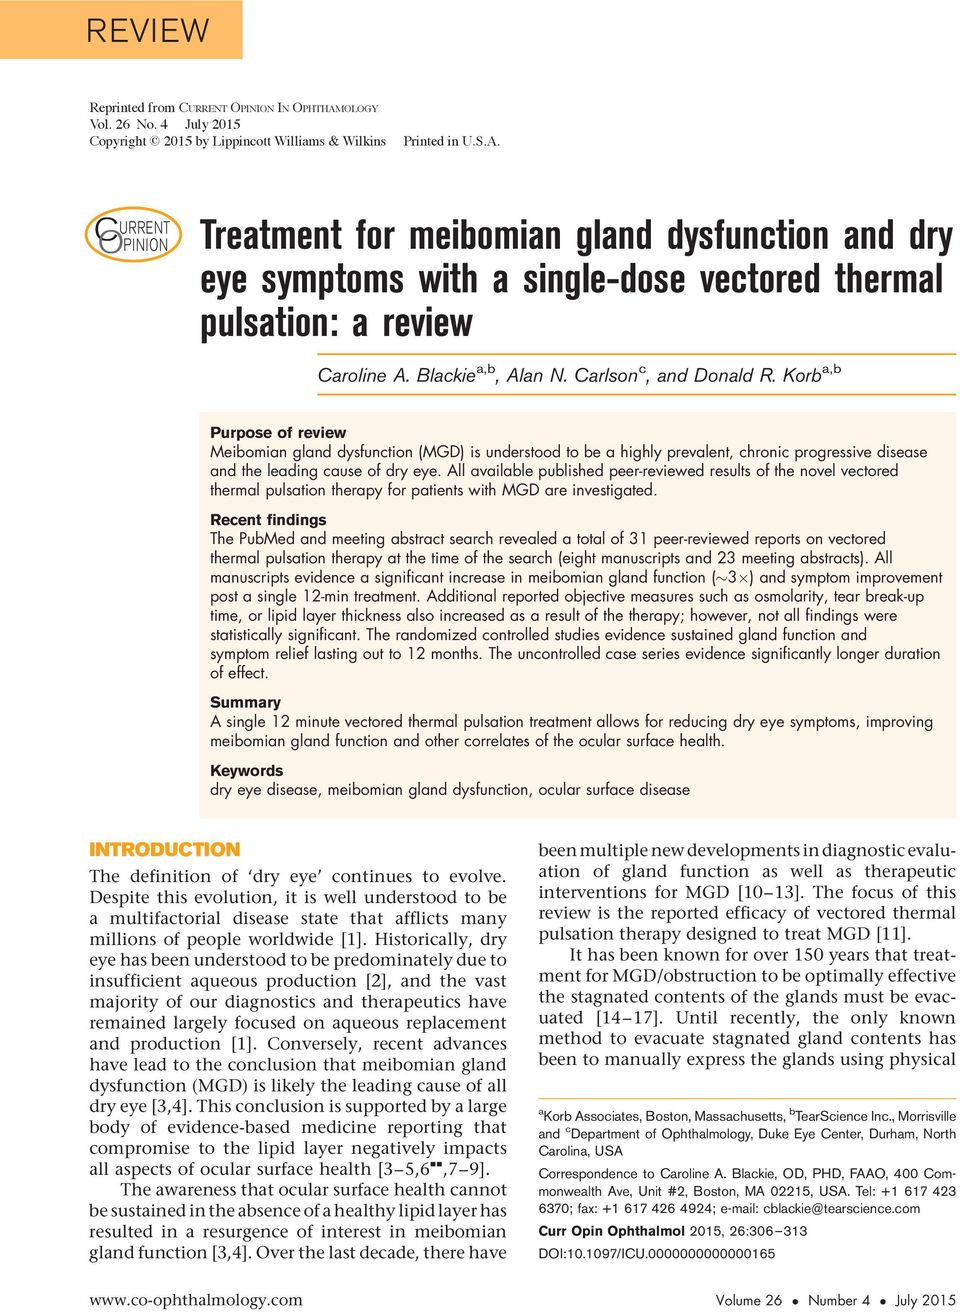 Korb a,b Purpose of review Meibomian gland dysfunction (MGD) is understood to be a highly prevalent, chronic progressive disease and the leading cause of dry eye.